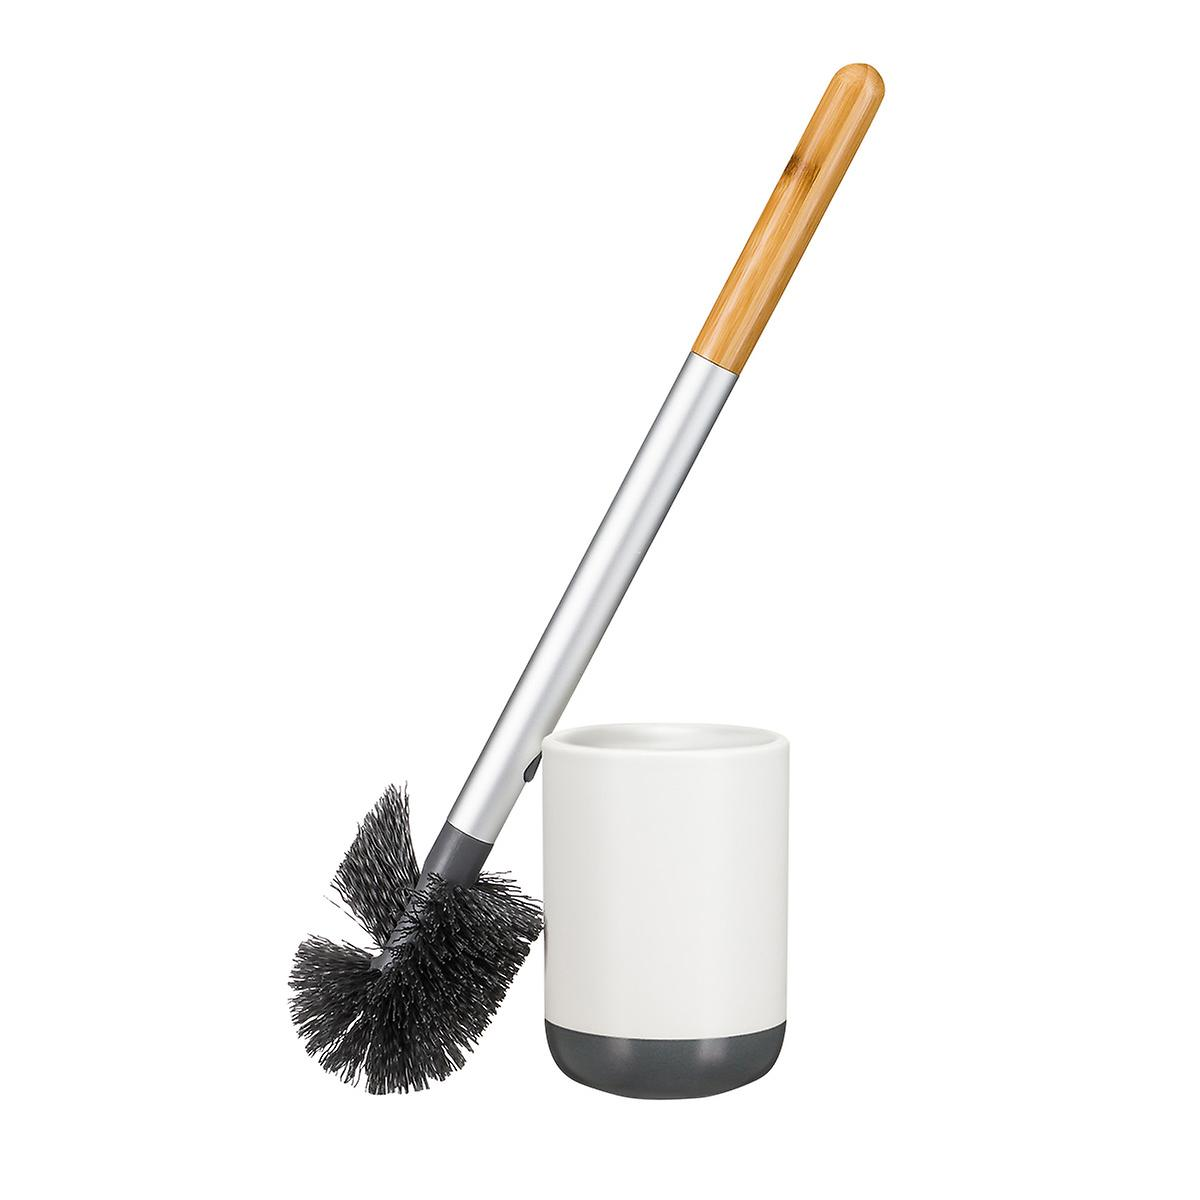 Full Circle Scrub Queen Toilet Brush